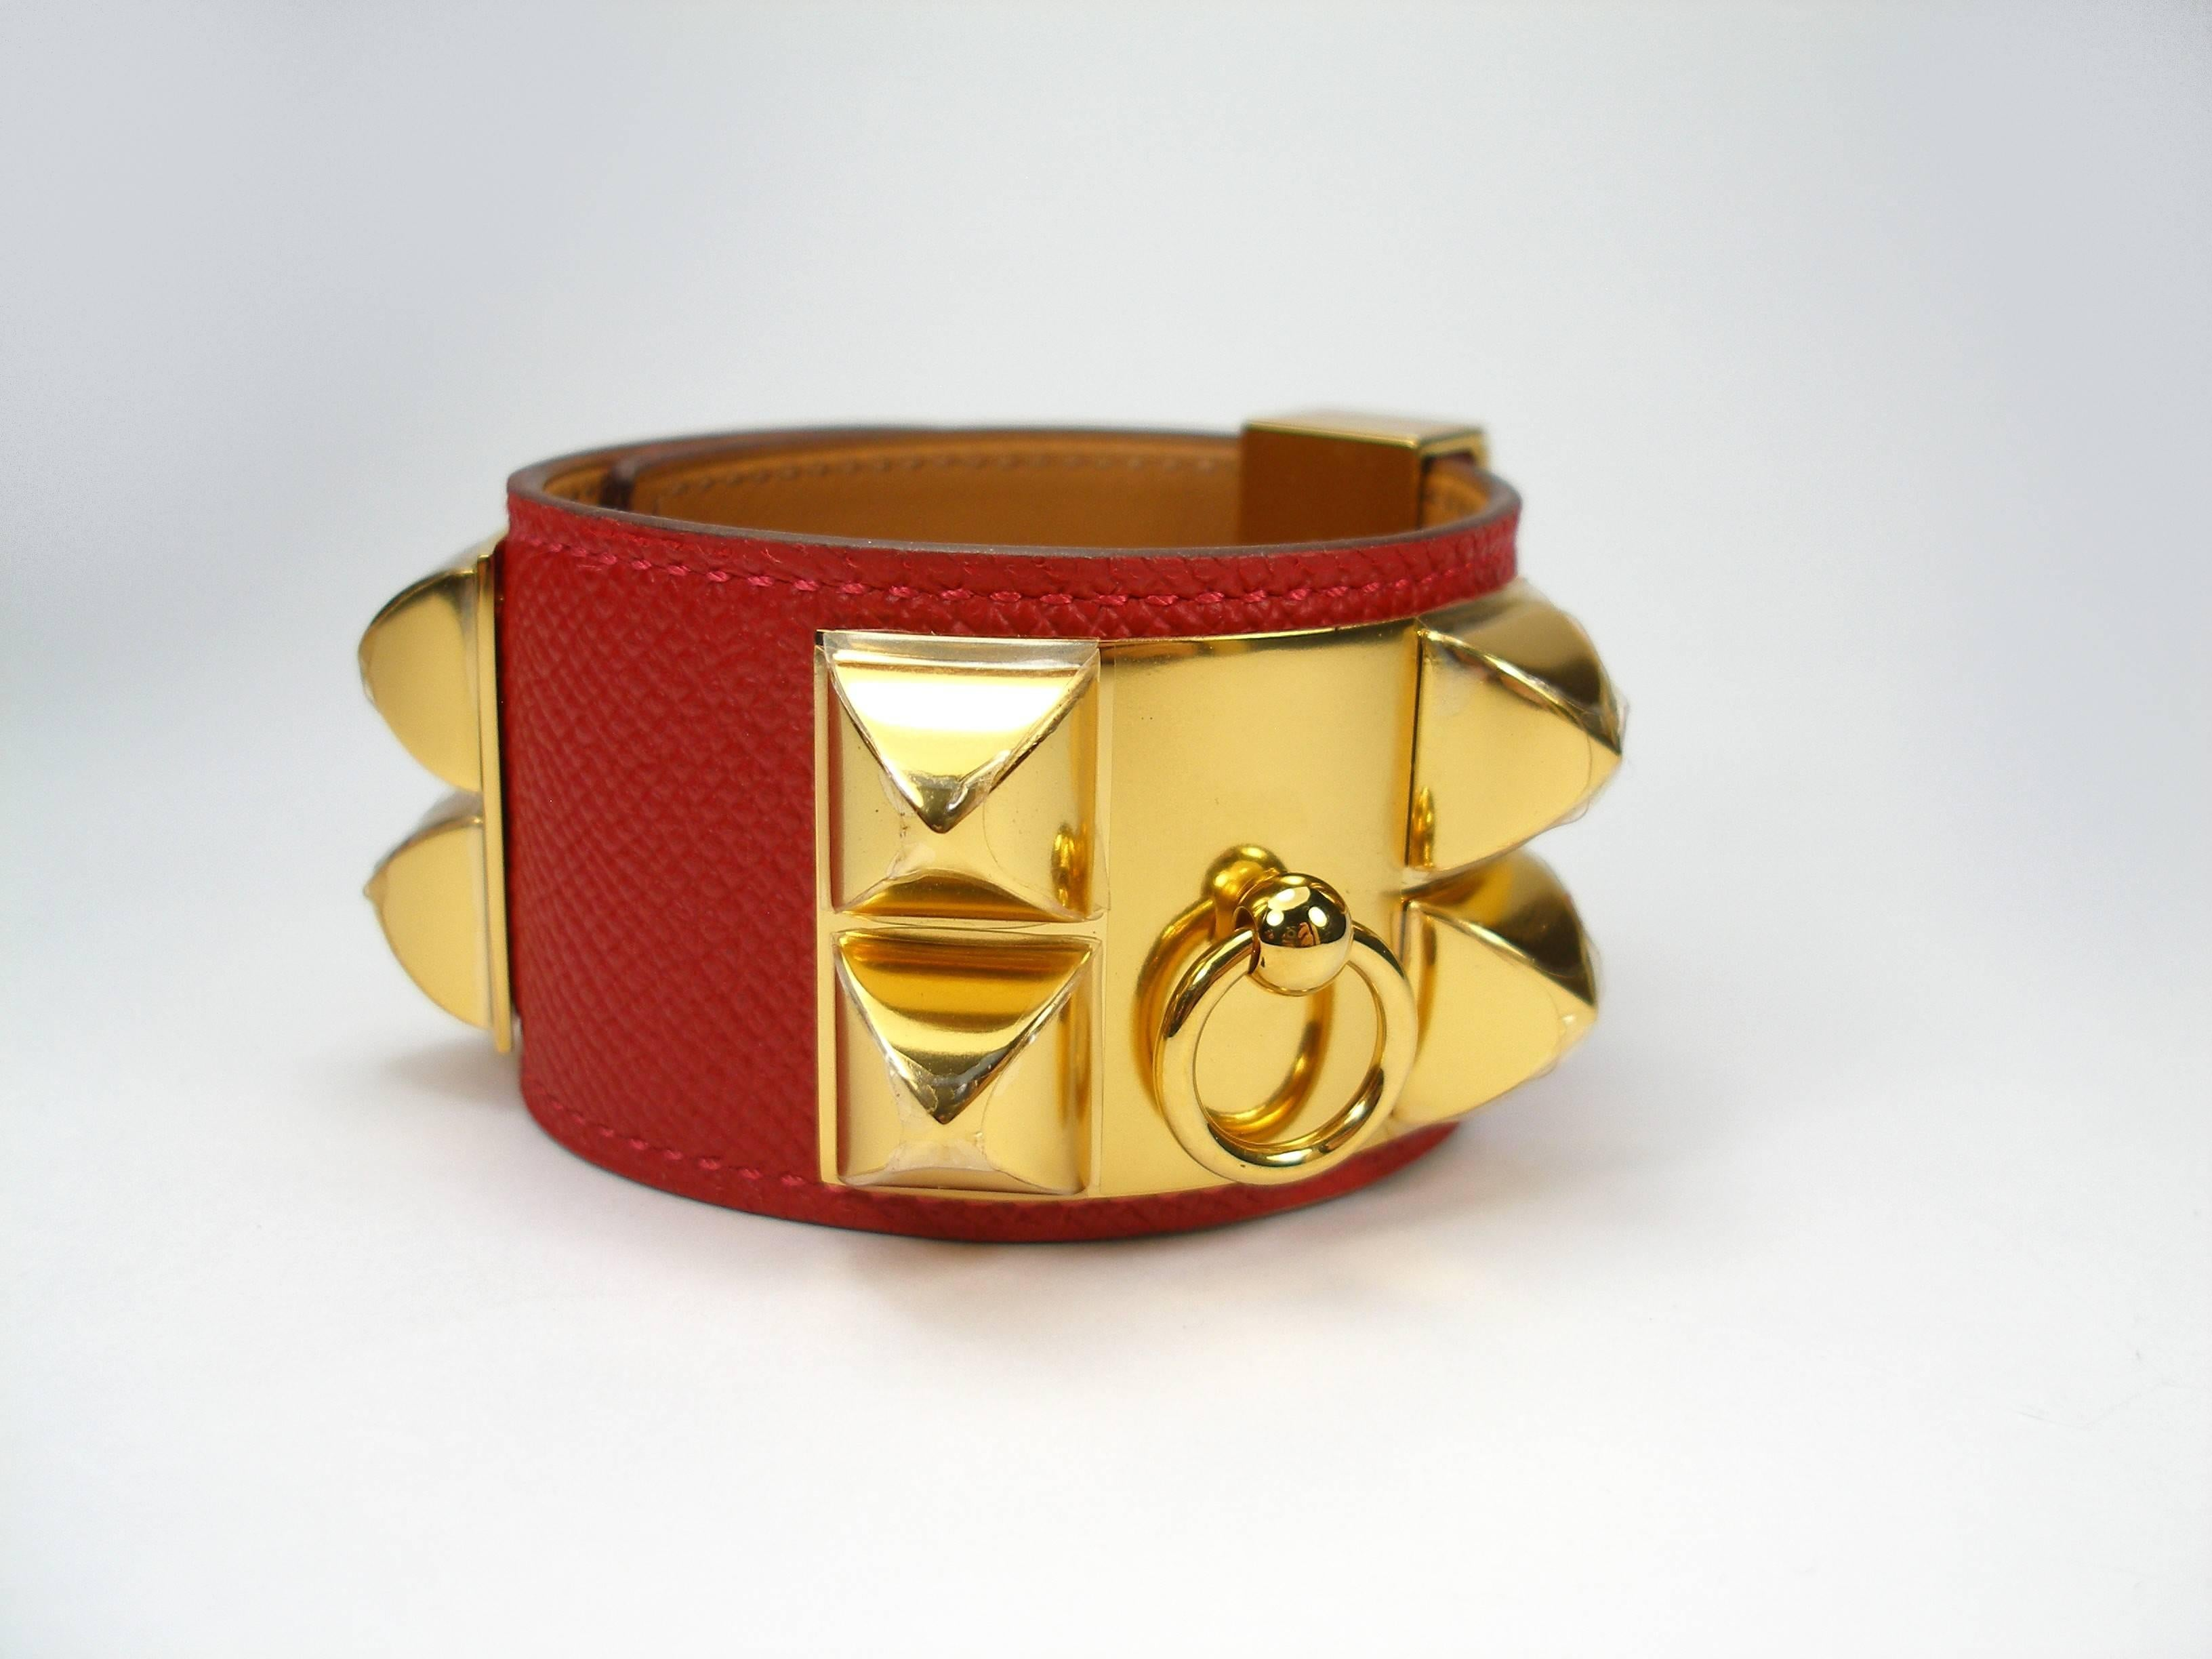 orange collier house swift of bracelet hermes boutique loved and palladium pre product leather vintage de chien cdc